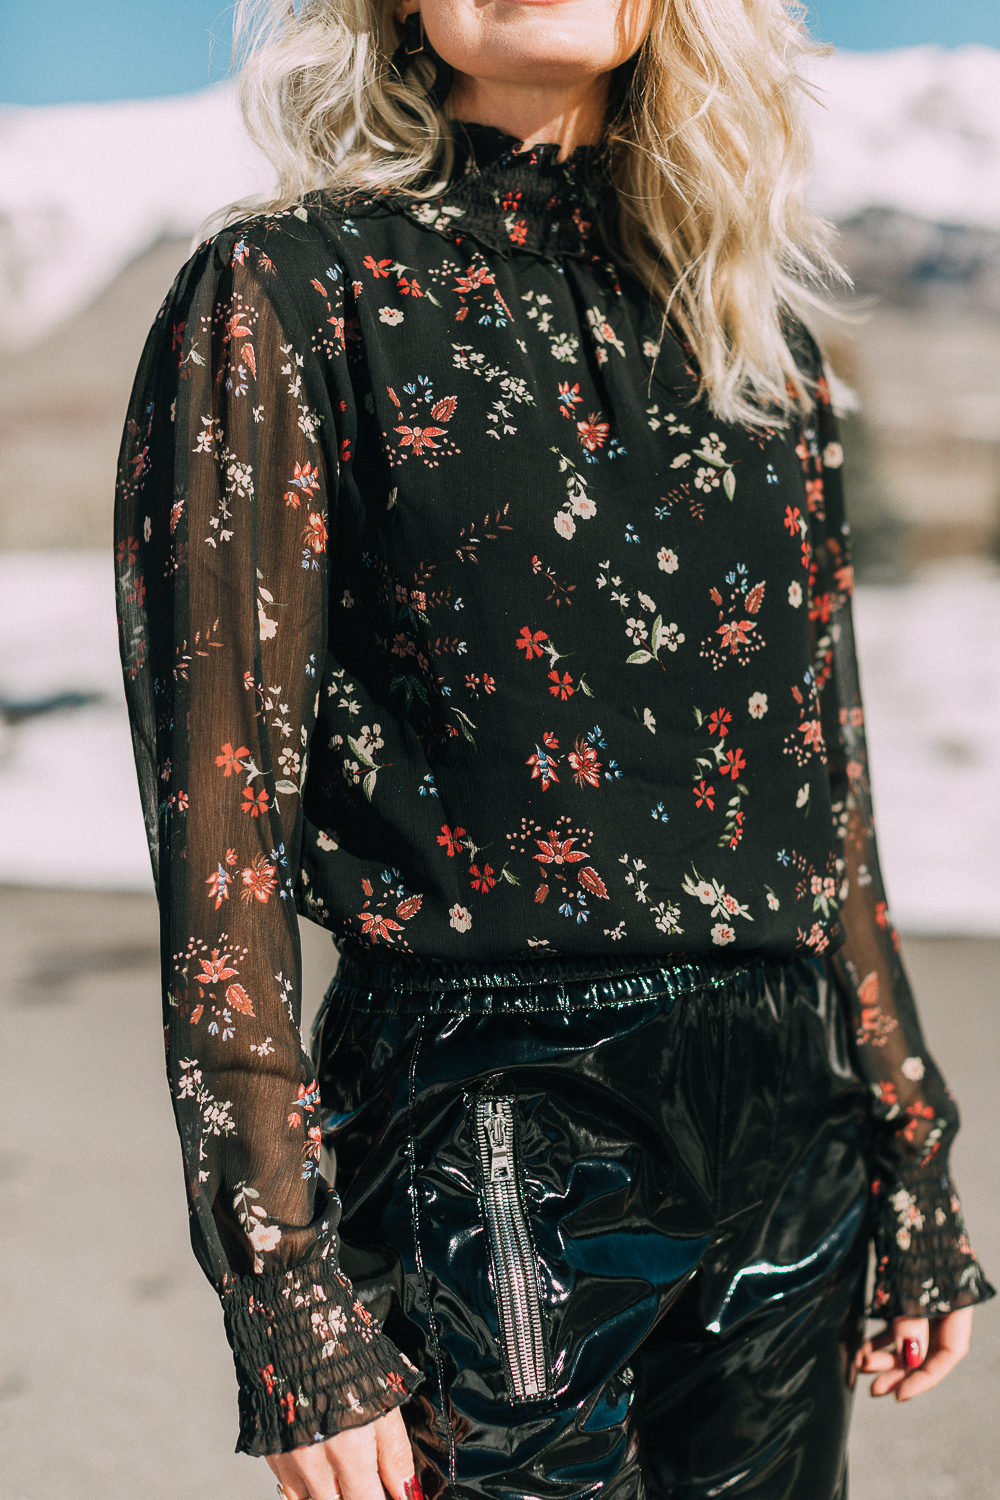 Fashion Blogger Erin Busbee of Busbee Style wearing a black floral blouse by Sanctuary tucked in to vinyl pants by RtA